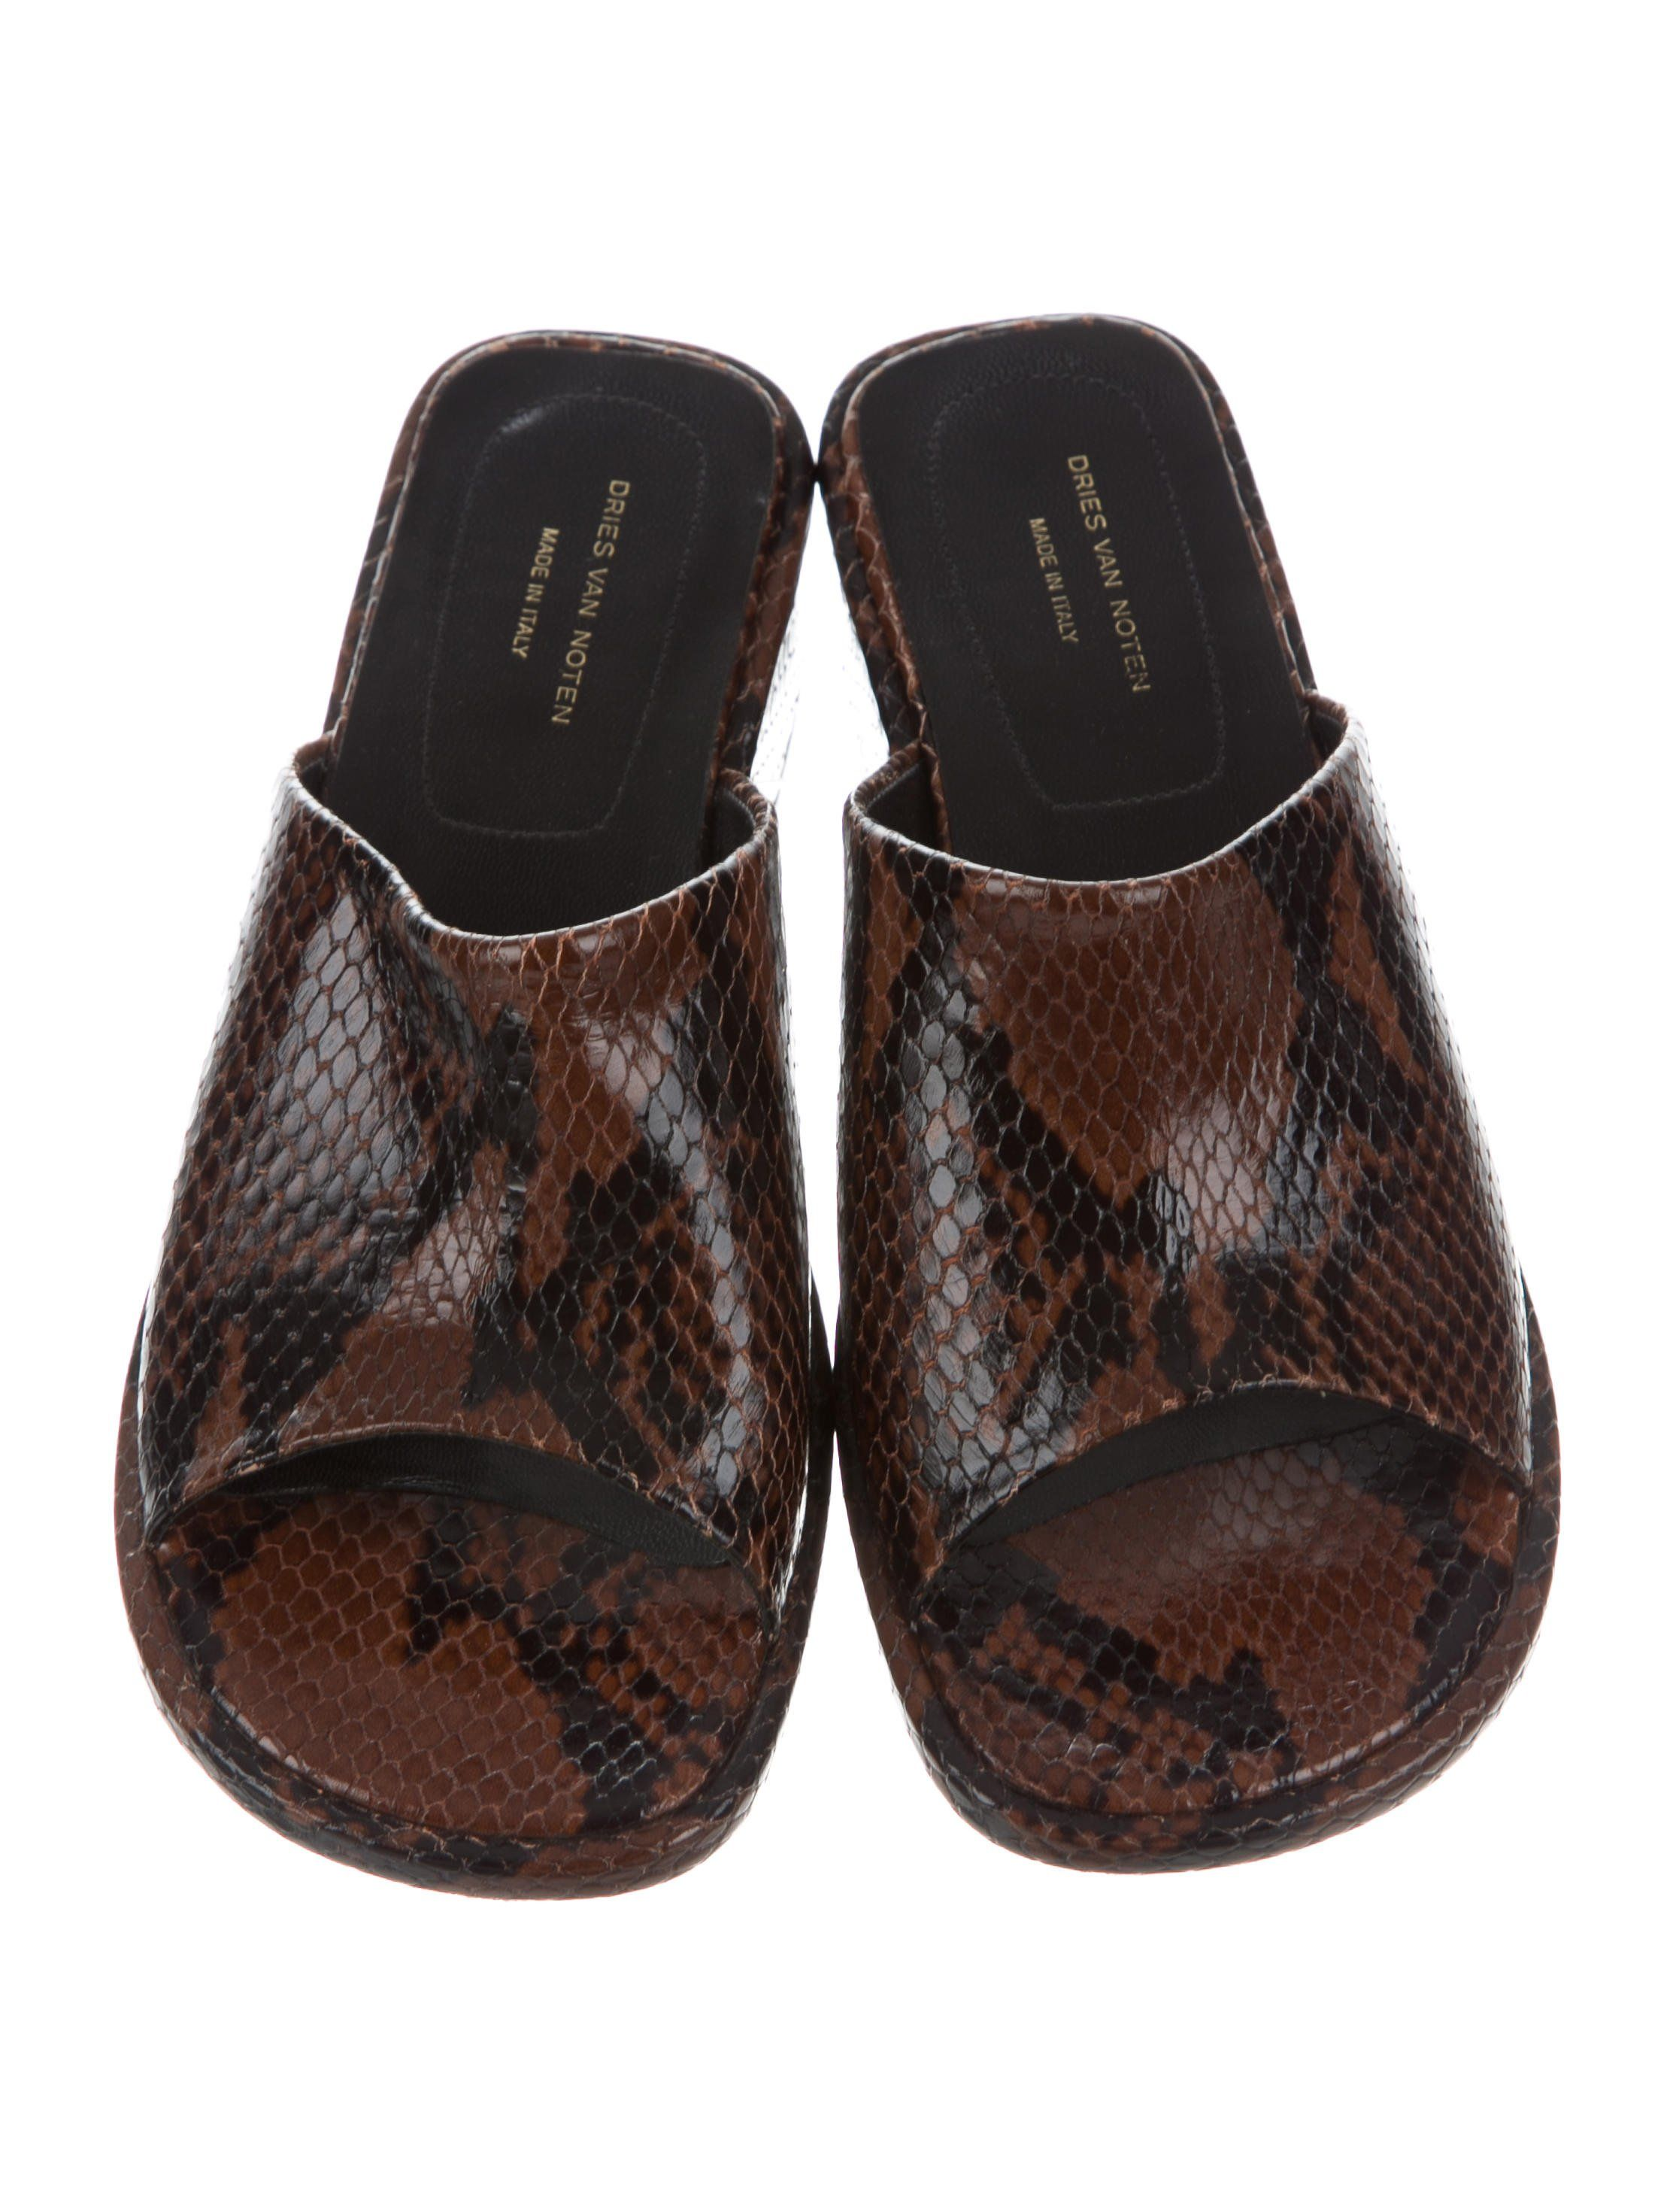 e2b55bdbbe Brown python Dries Van Noten slide sandals with square-toe and covered  heels. Includes box and dust bag. Unfortunately